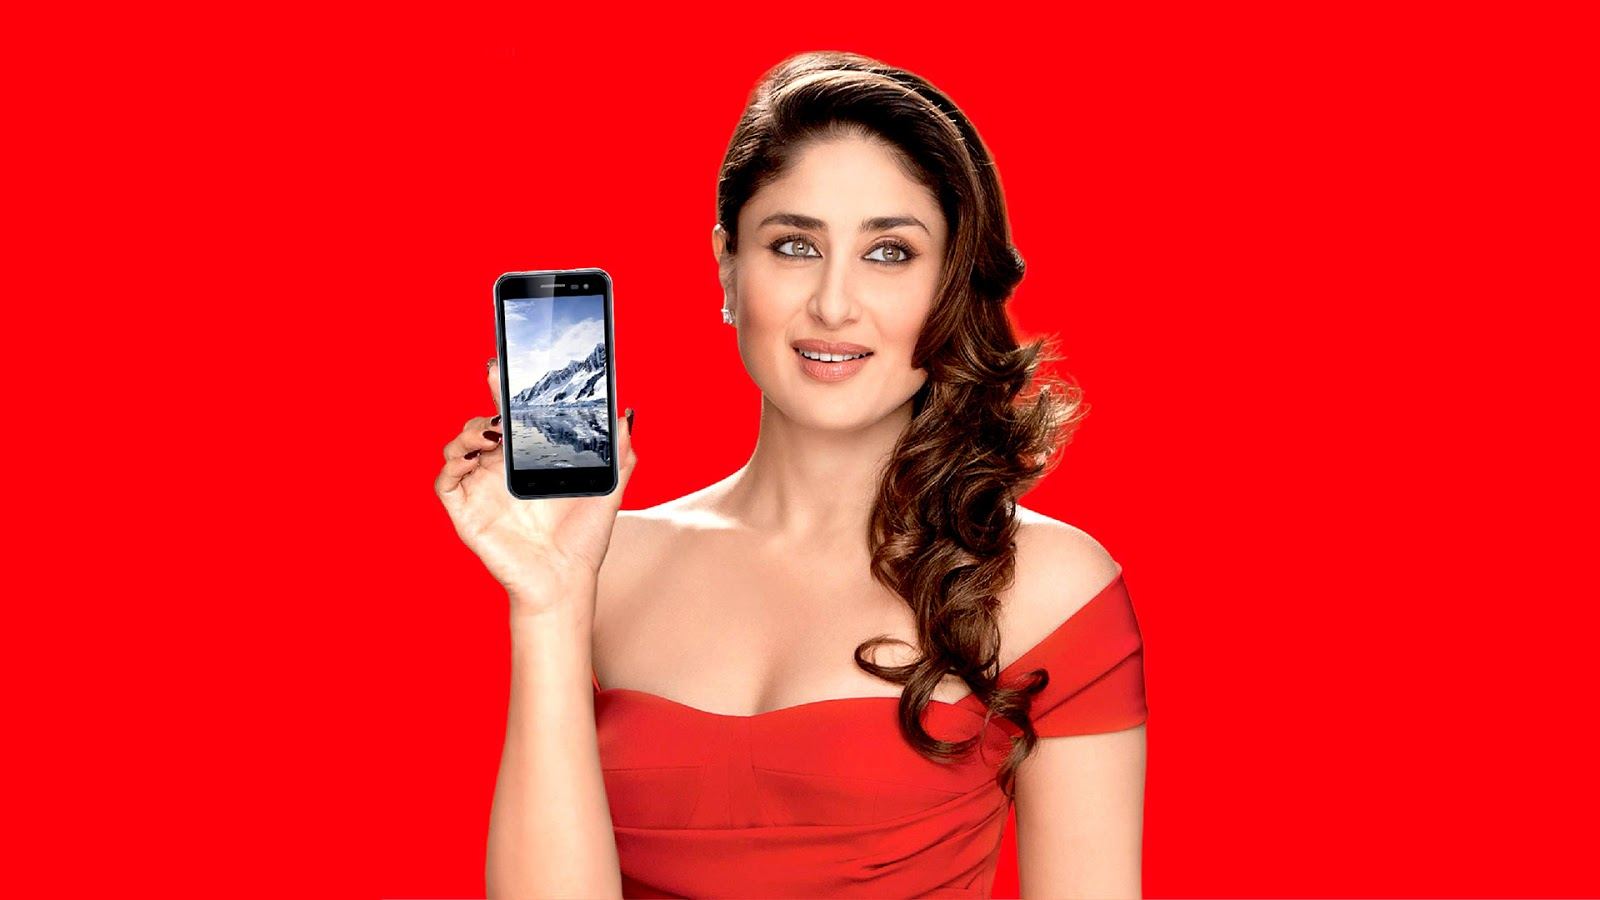 Kareena Kapoor Khan Wallpapers Hd Download Free 1080P -6627